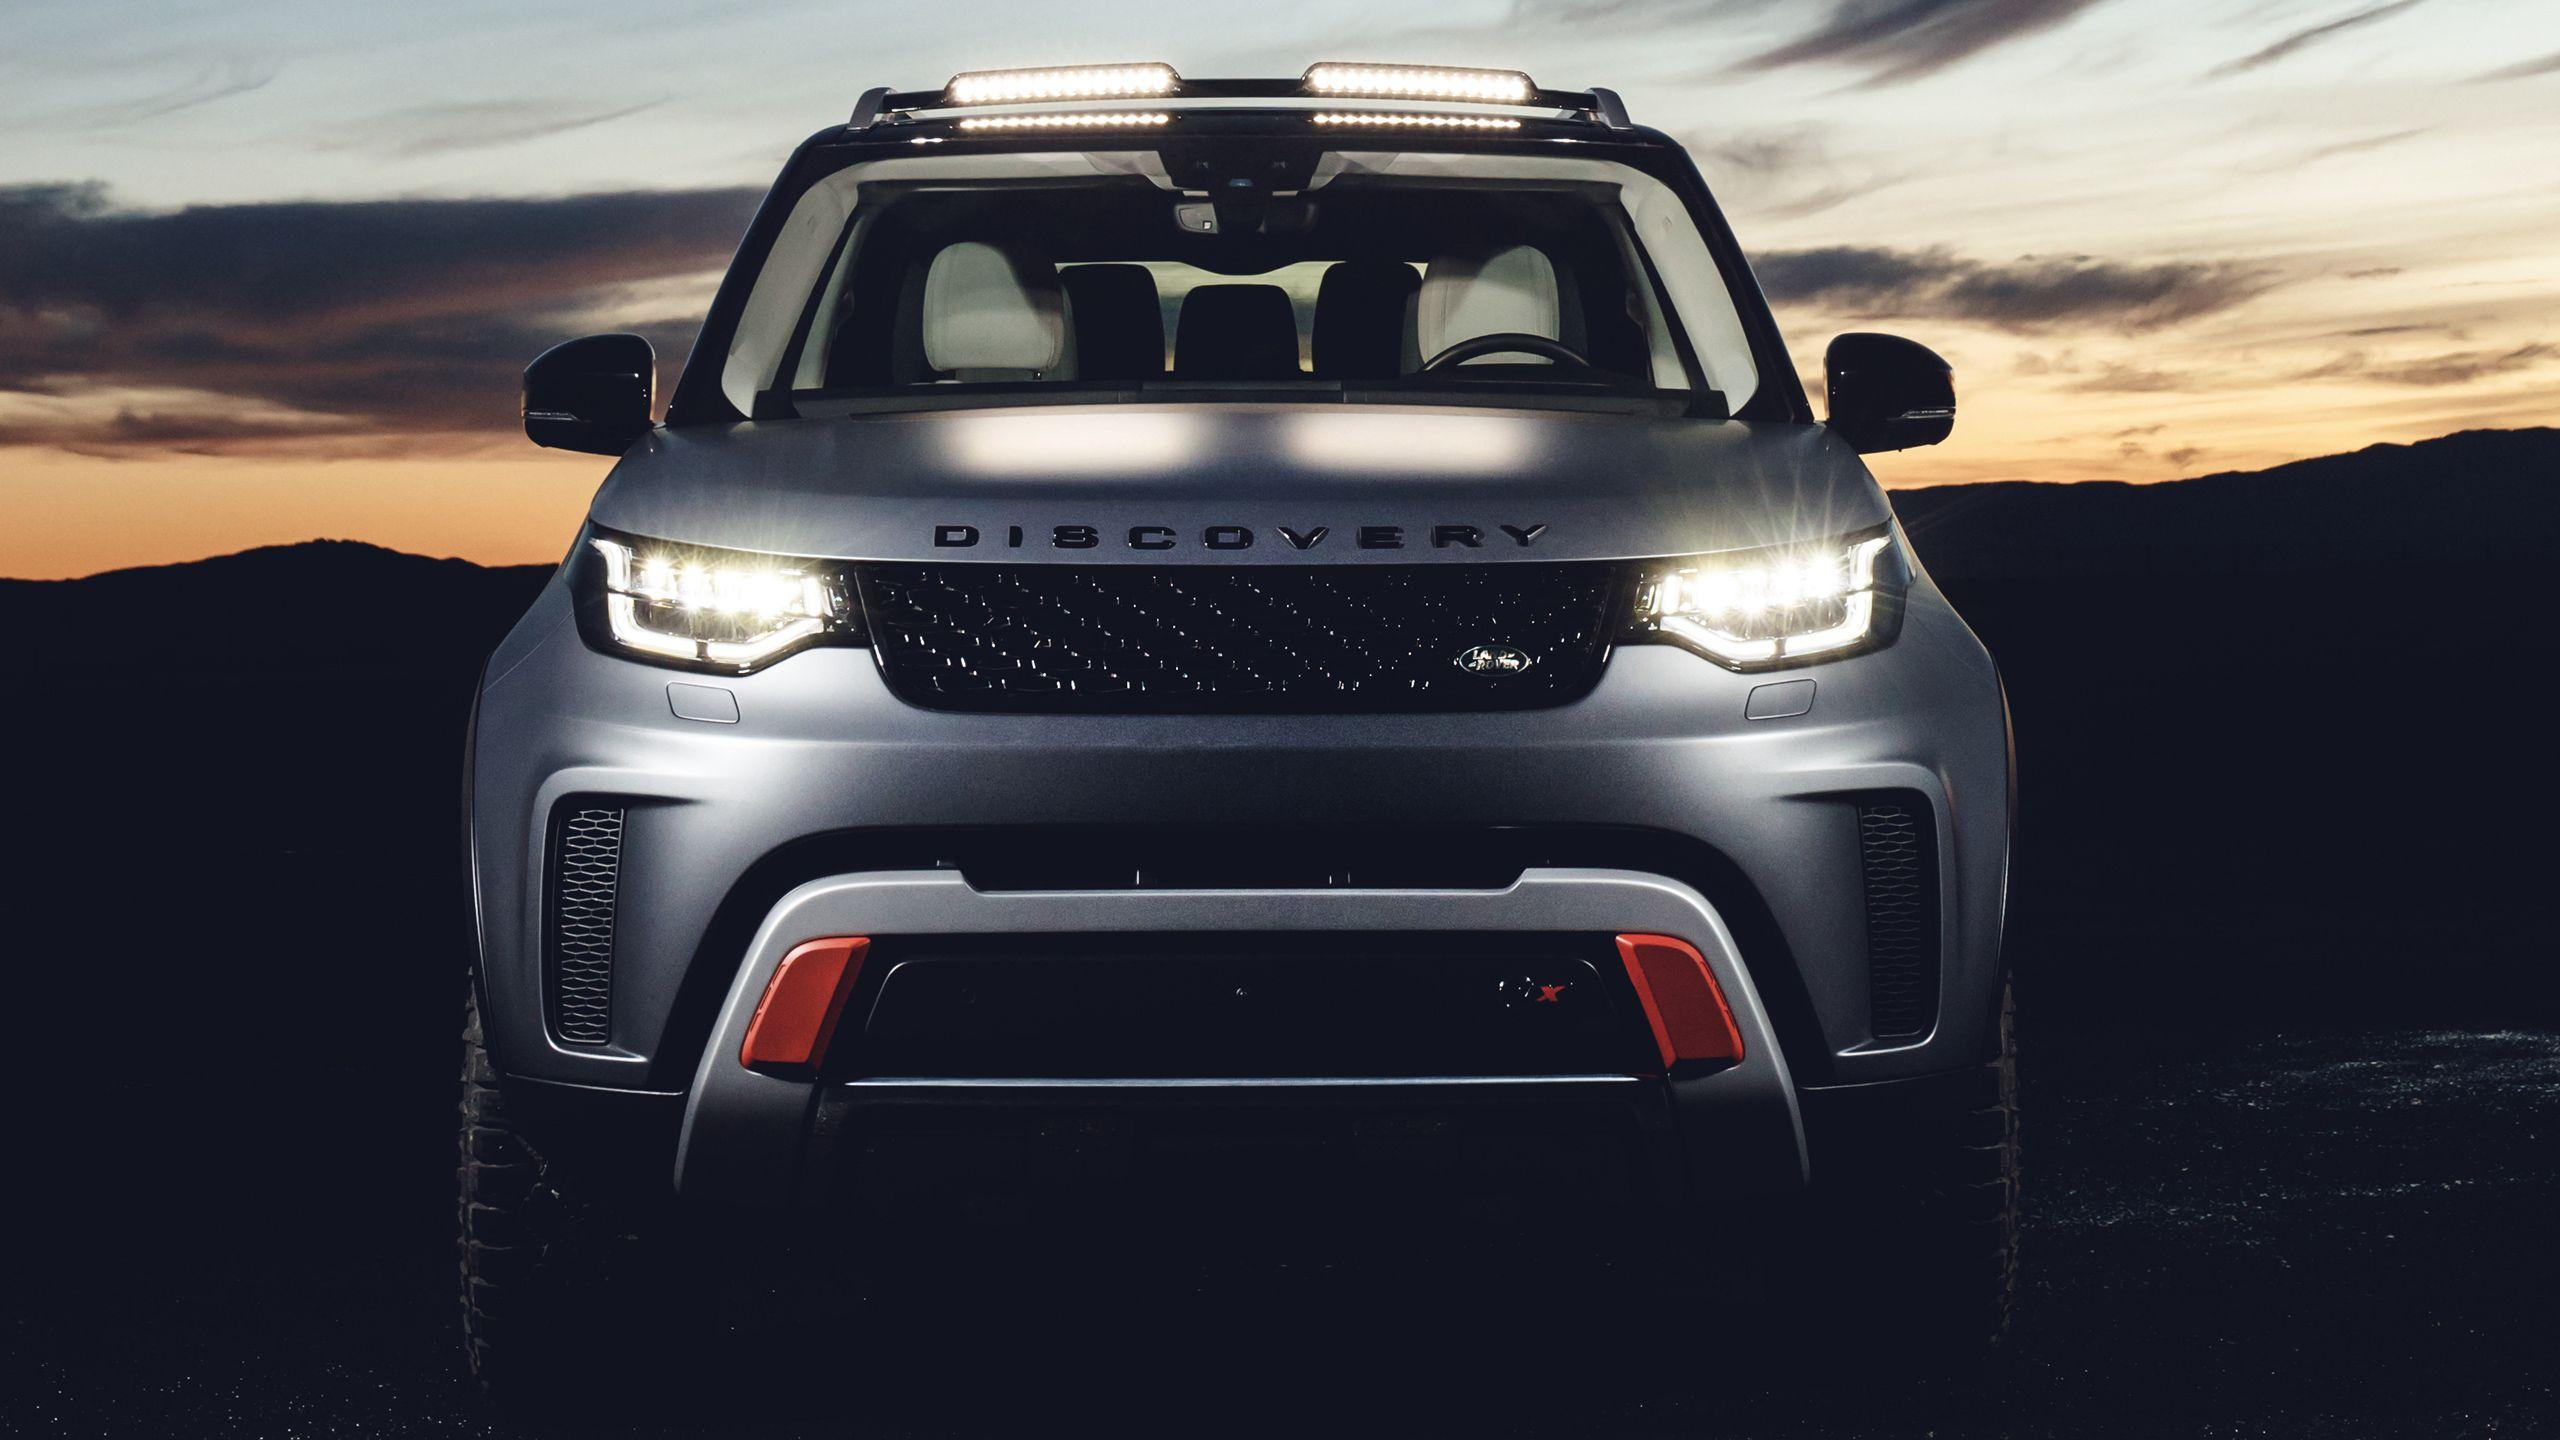 2018 Land Rover Discovery SVX Wallpapers